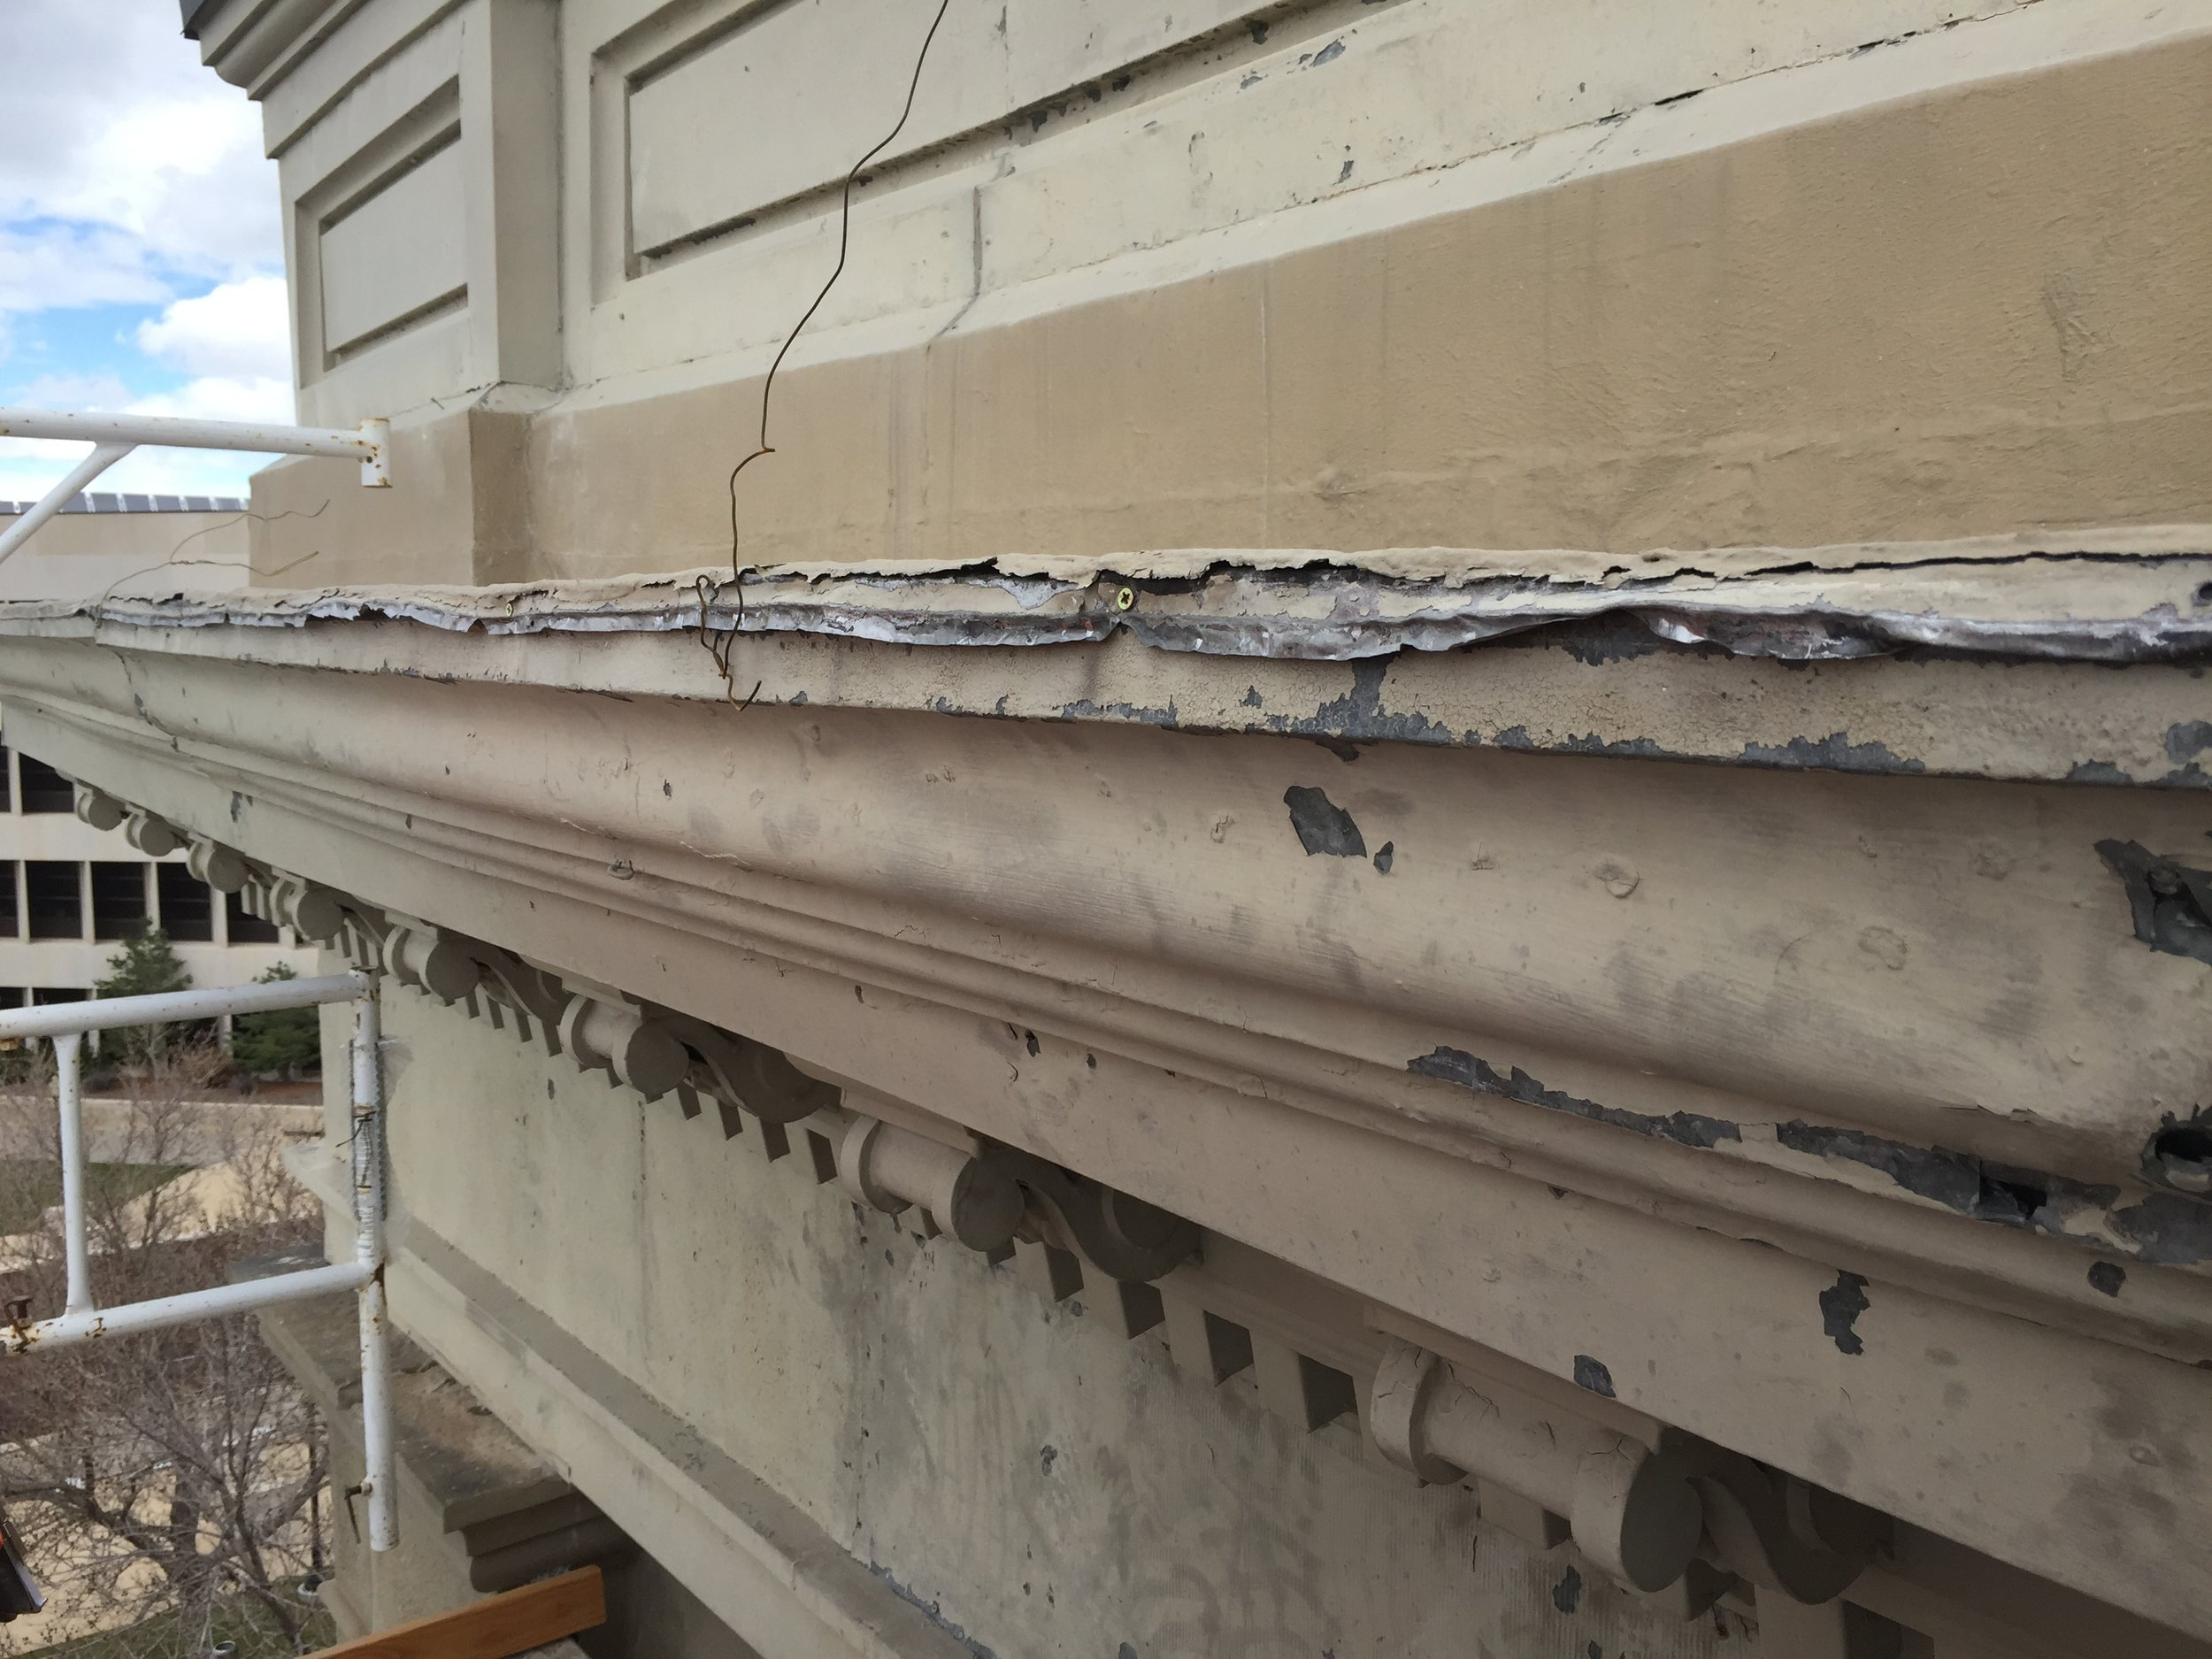 The damaged external entablature, made of sheet metal, is being replaced and a structurally sound steel system will secure it to the building.